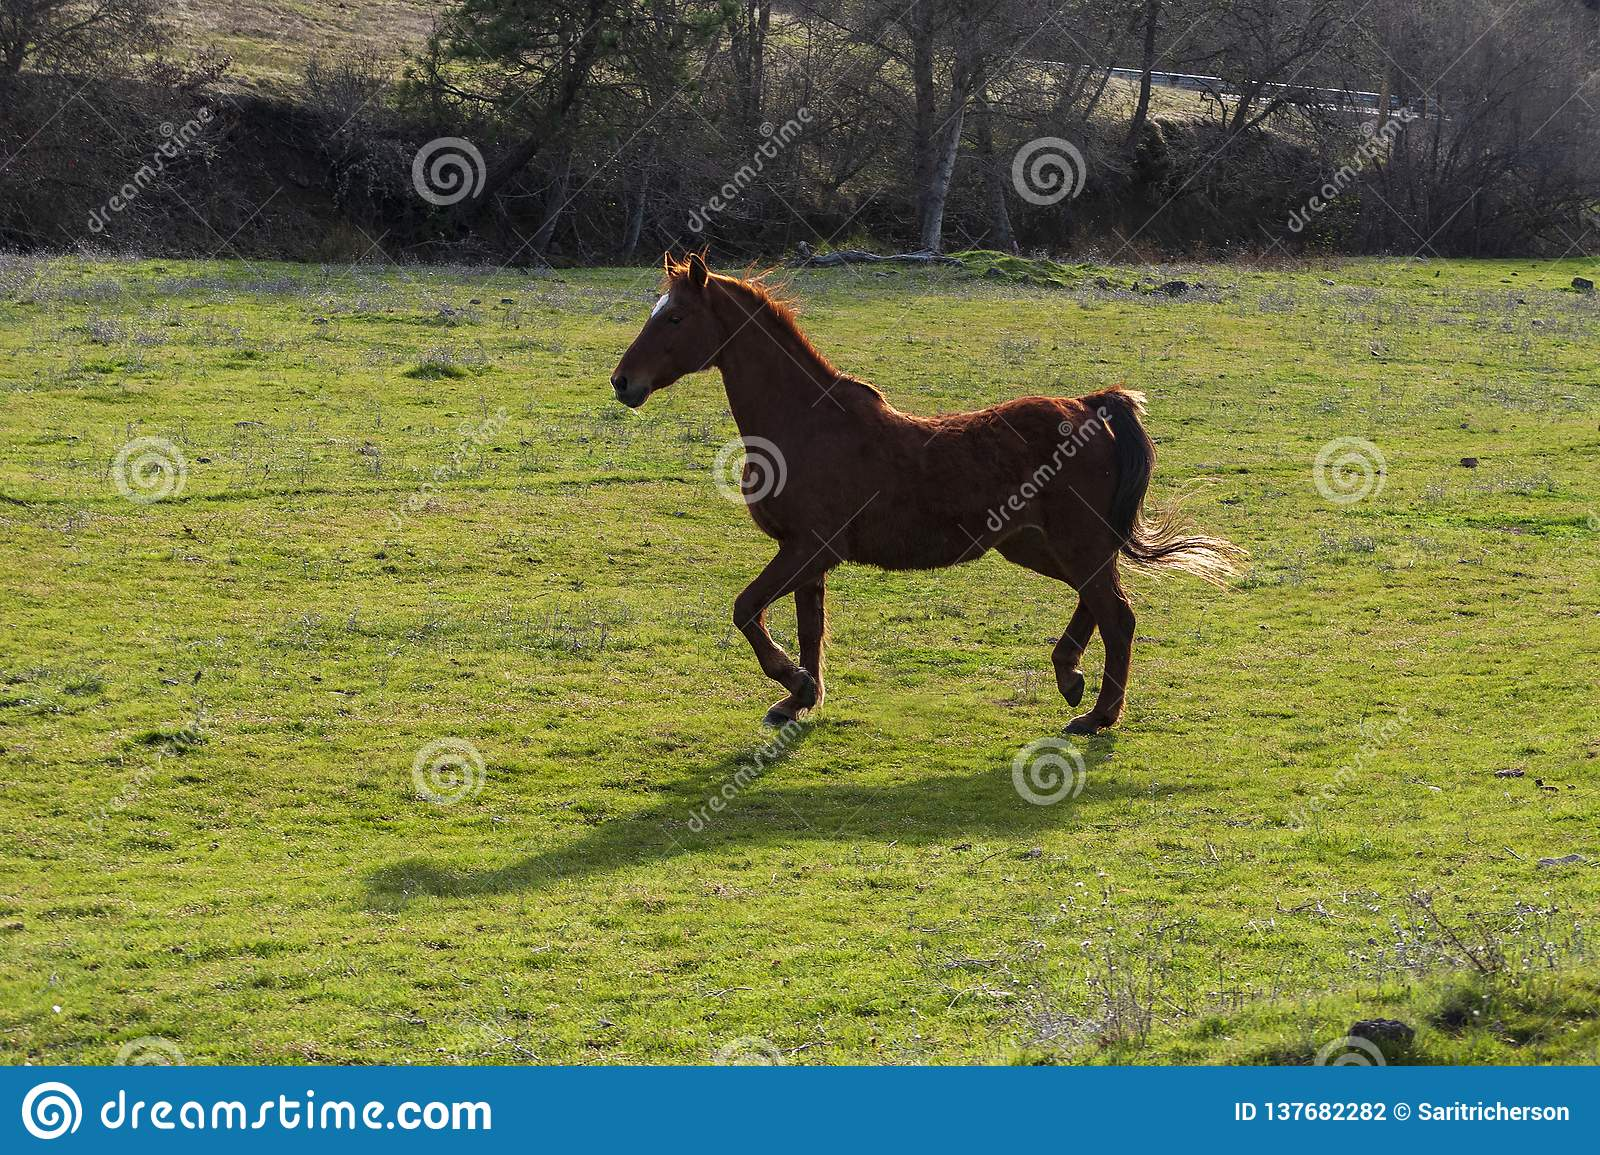 Old Saddlebred Mare Trotting in a Green Pasture